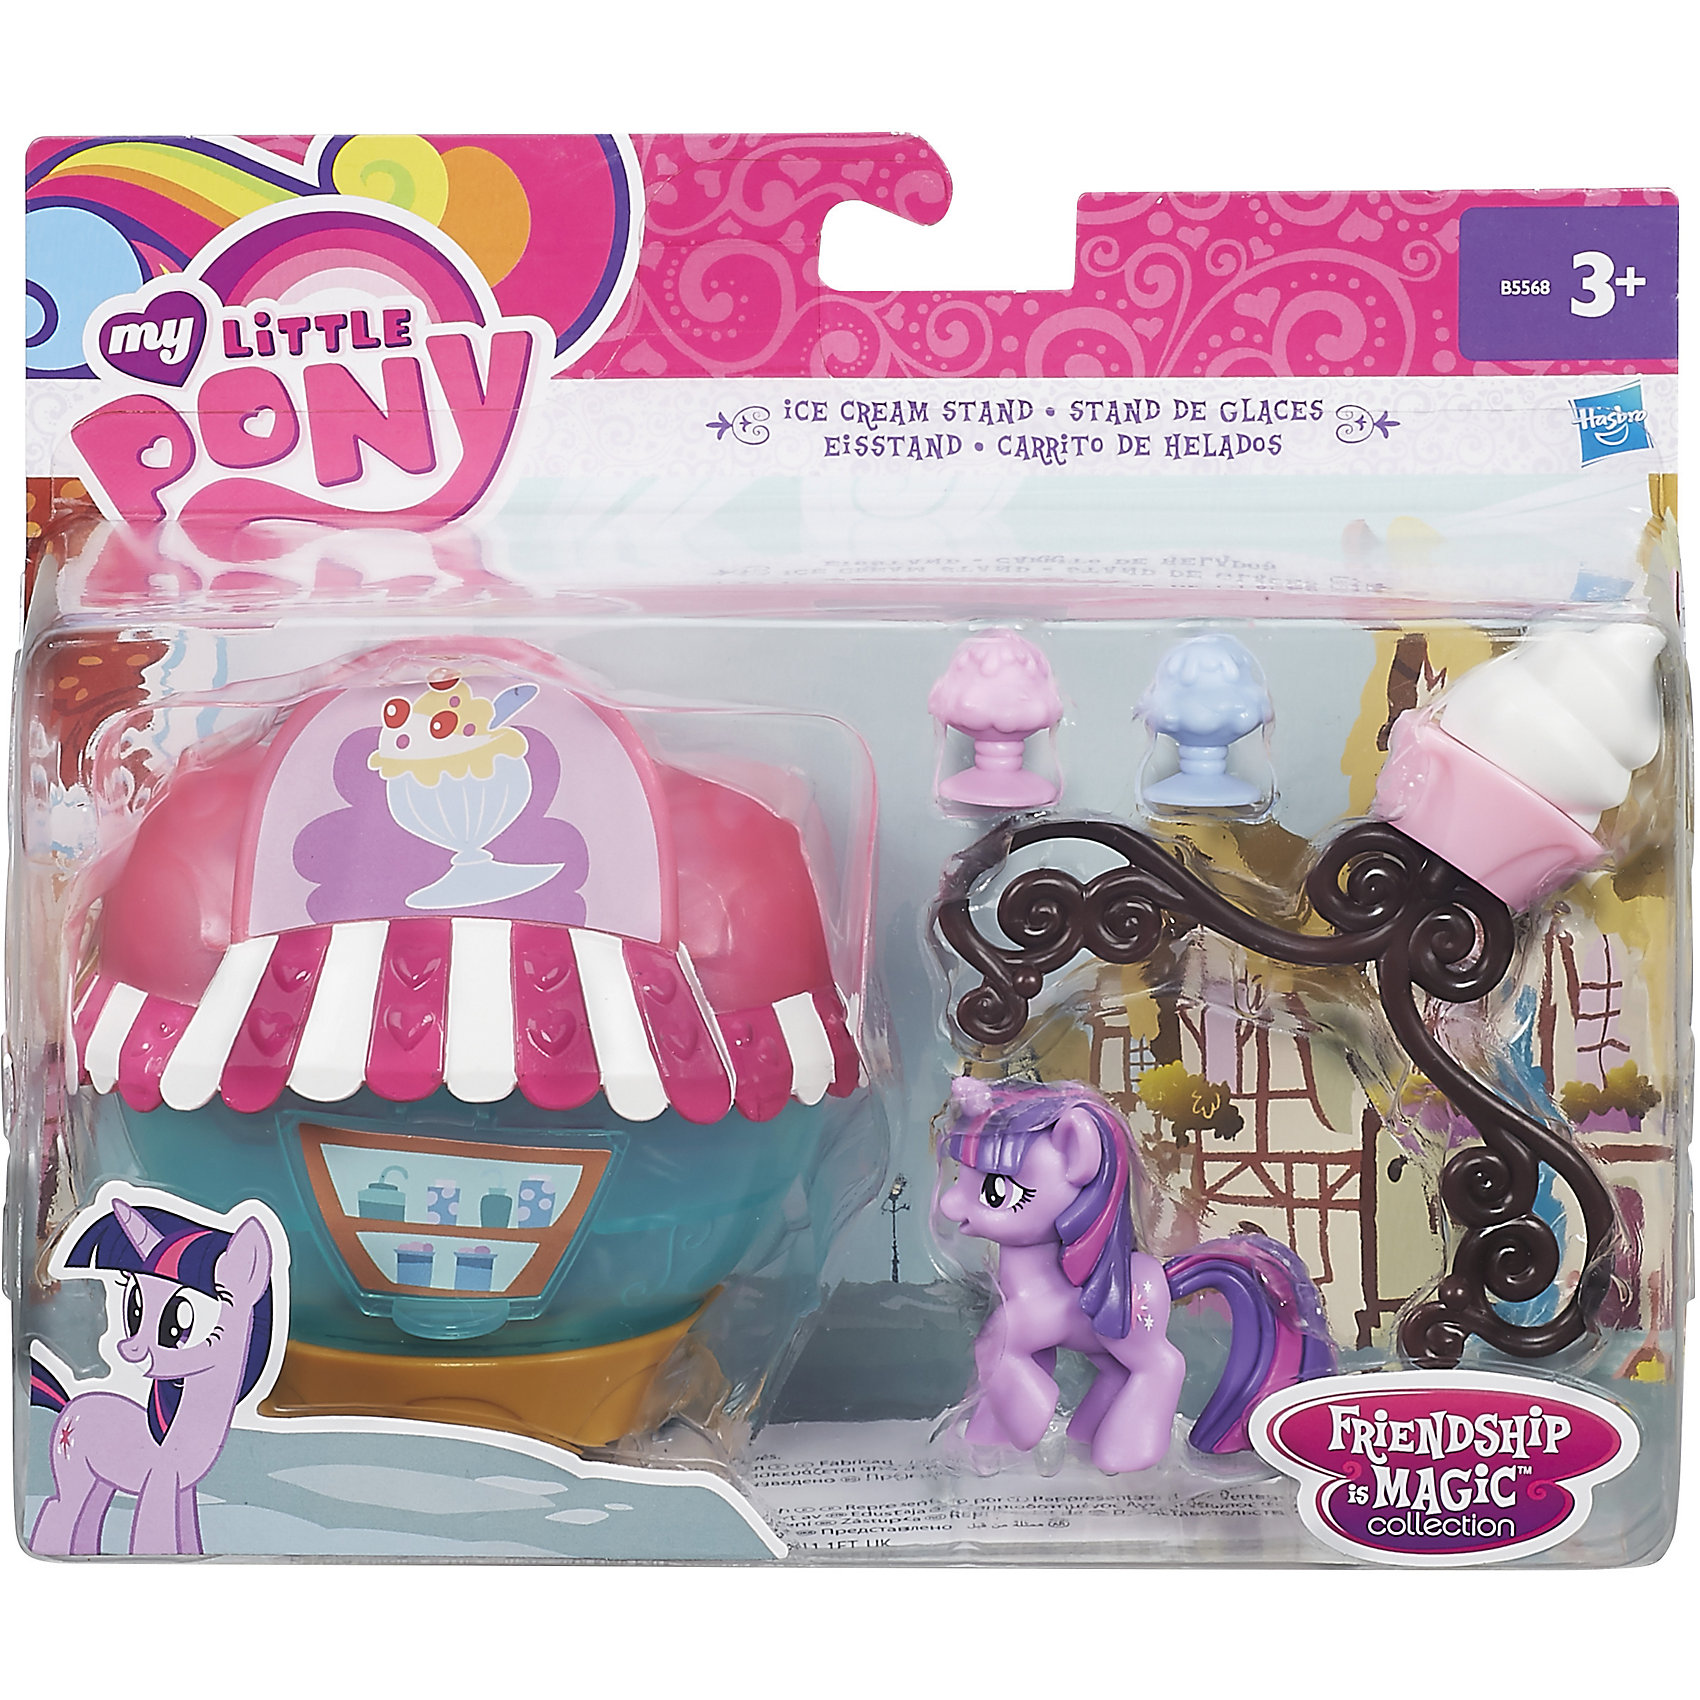 ������������� ������� ����-����� ����, My little Pony, B3597/B5568 (Hasbro)